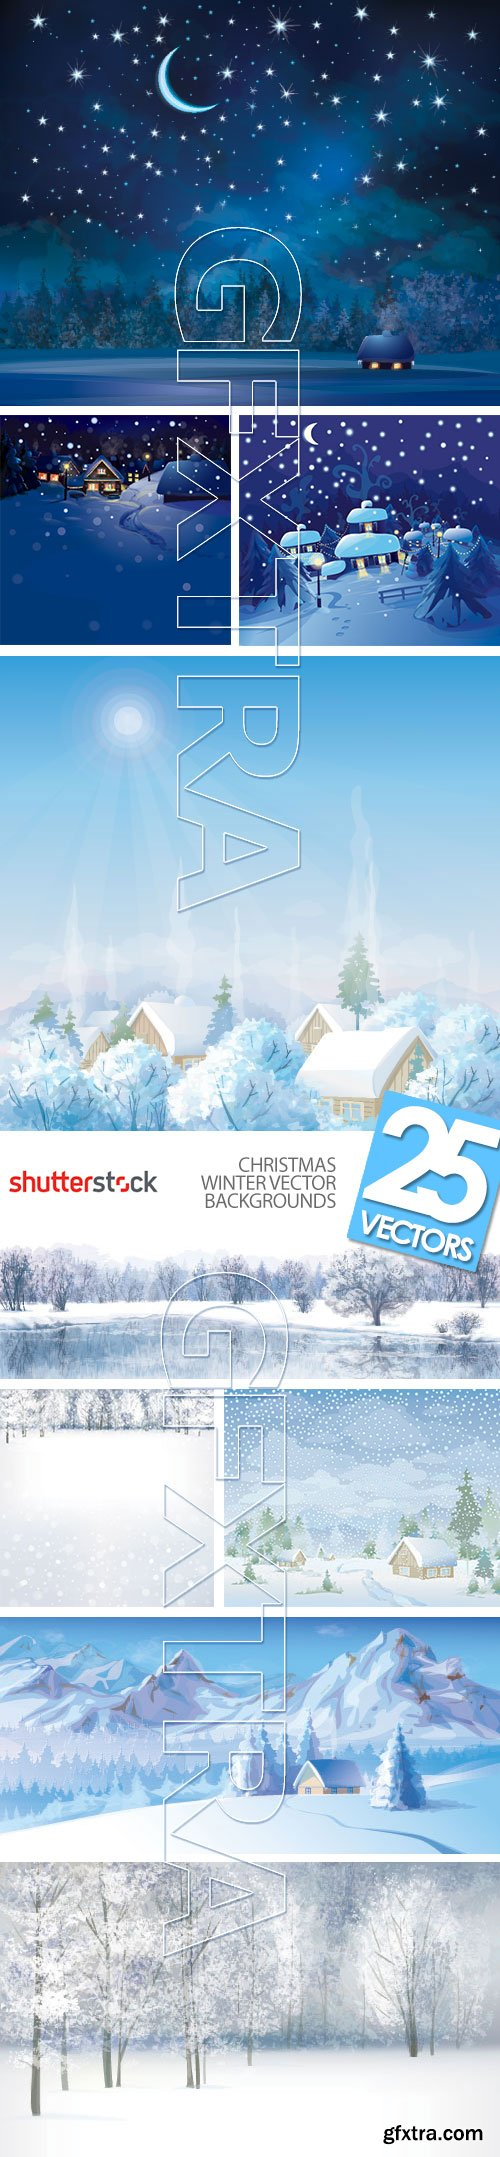 Christmas Winter Vector Backgrounds 30xEPS